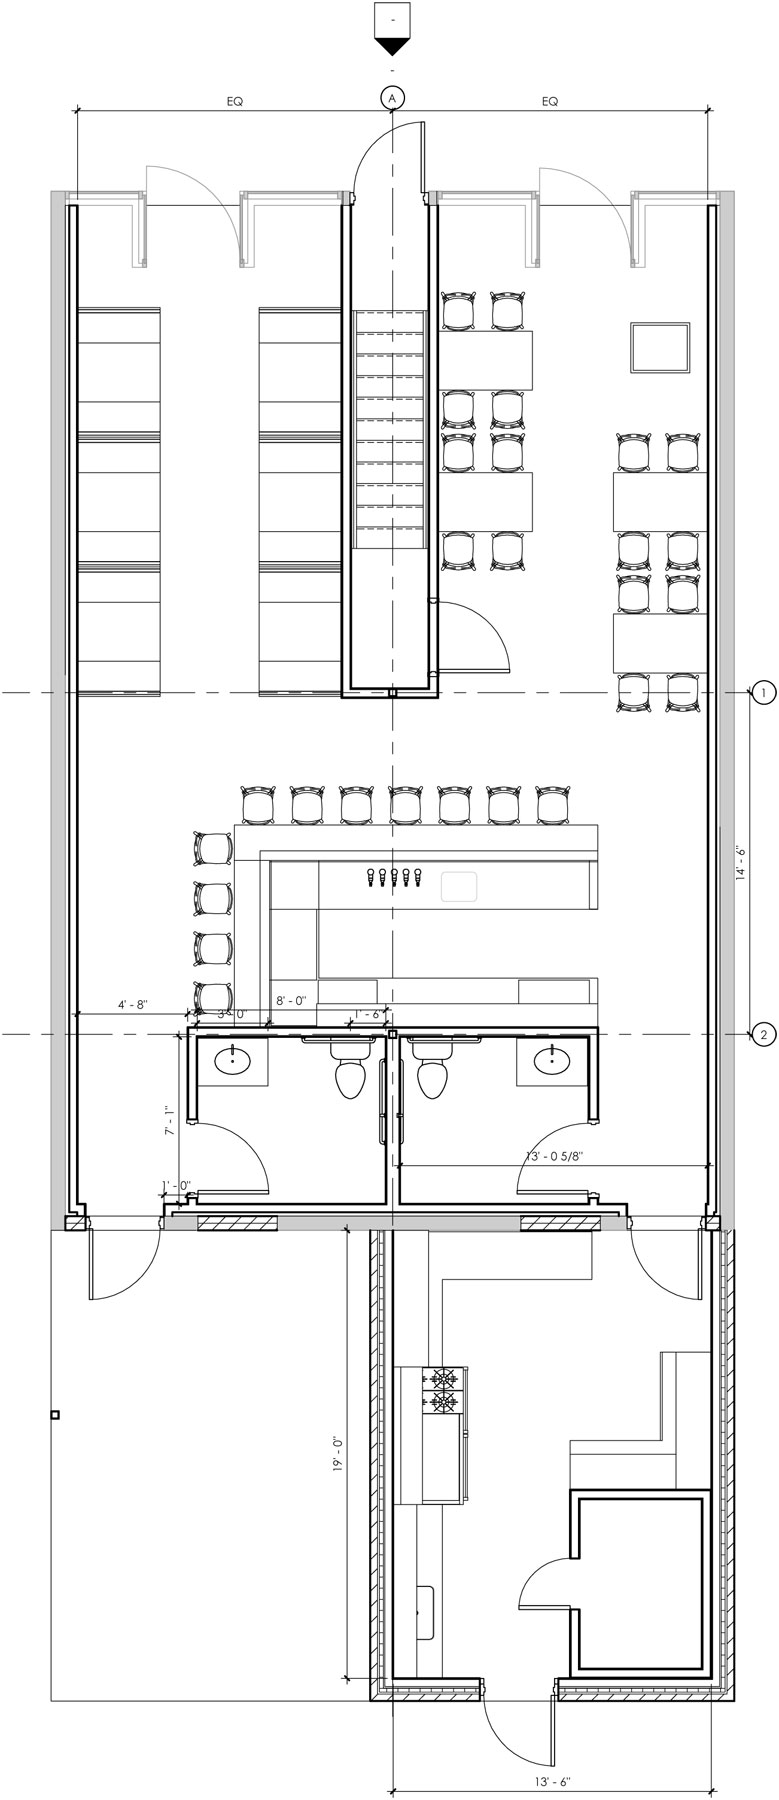 Restaurant - First Floor Plan